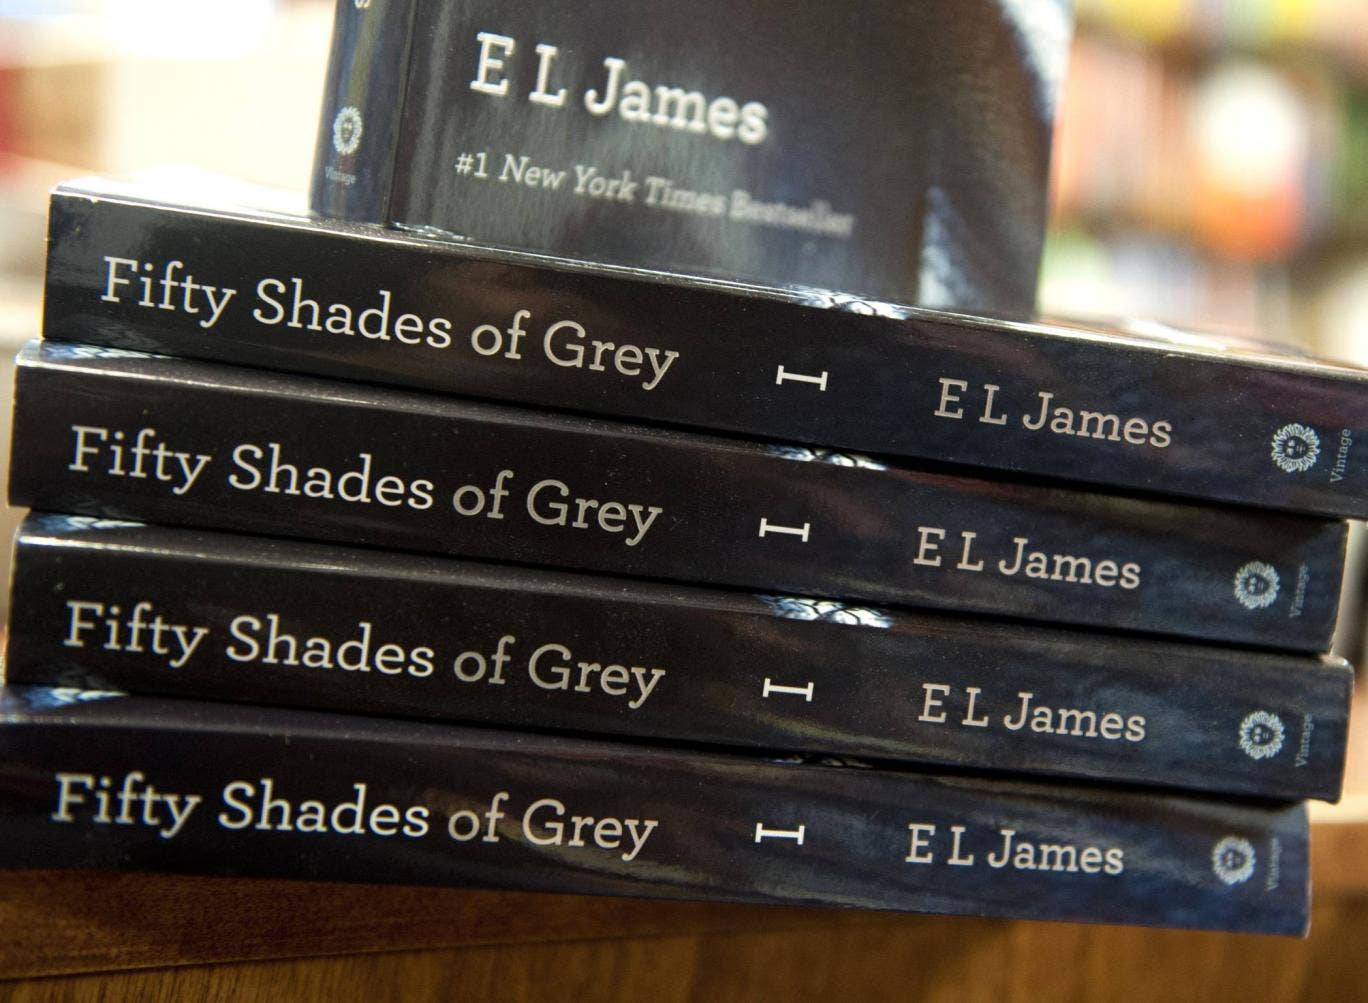 11 March 2012: Erotic romance novel Fifty Shades of Grey, by previously unknown British author EL James, topped the New York Times best-seller list.  A limited print run of the book, the first of a trilogy, sold out while the majority of sales were e-book